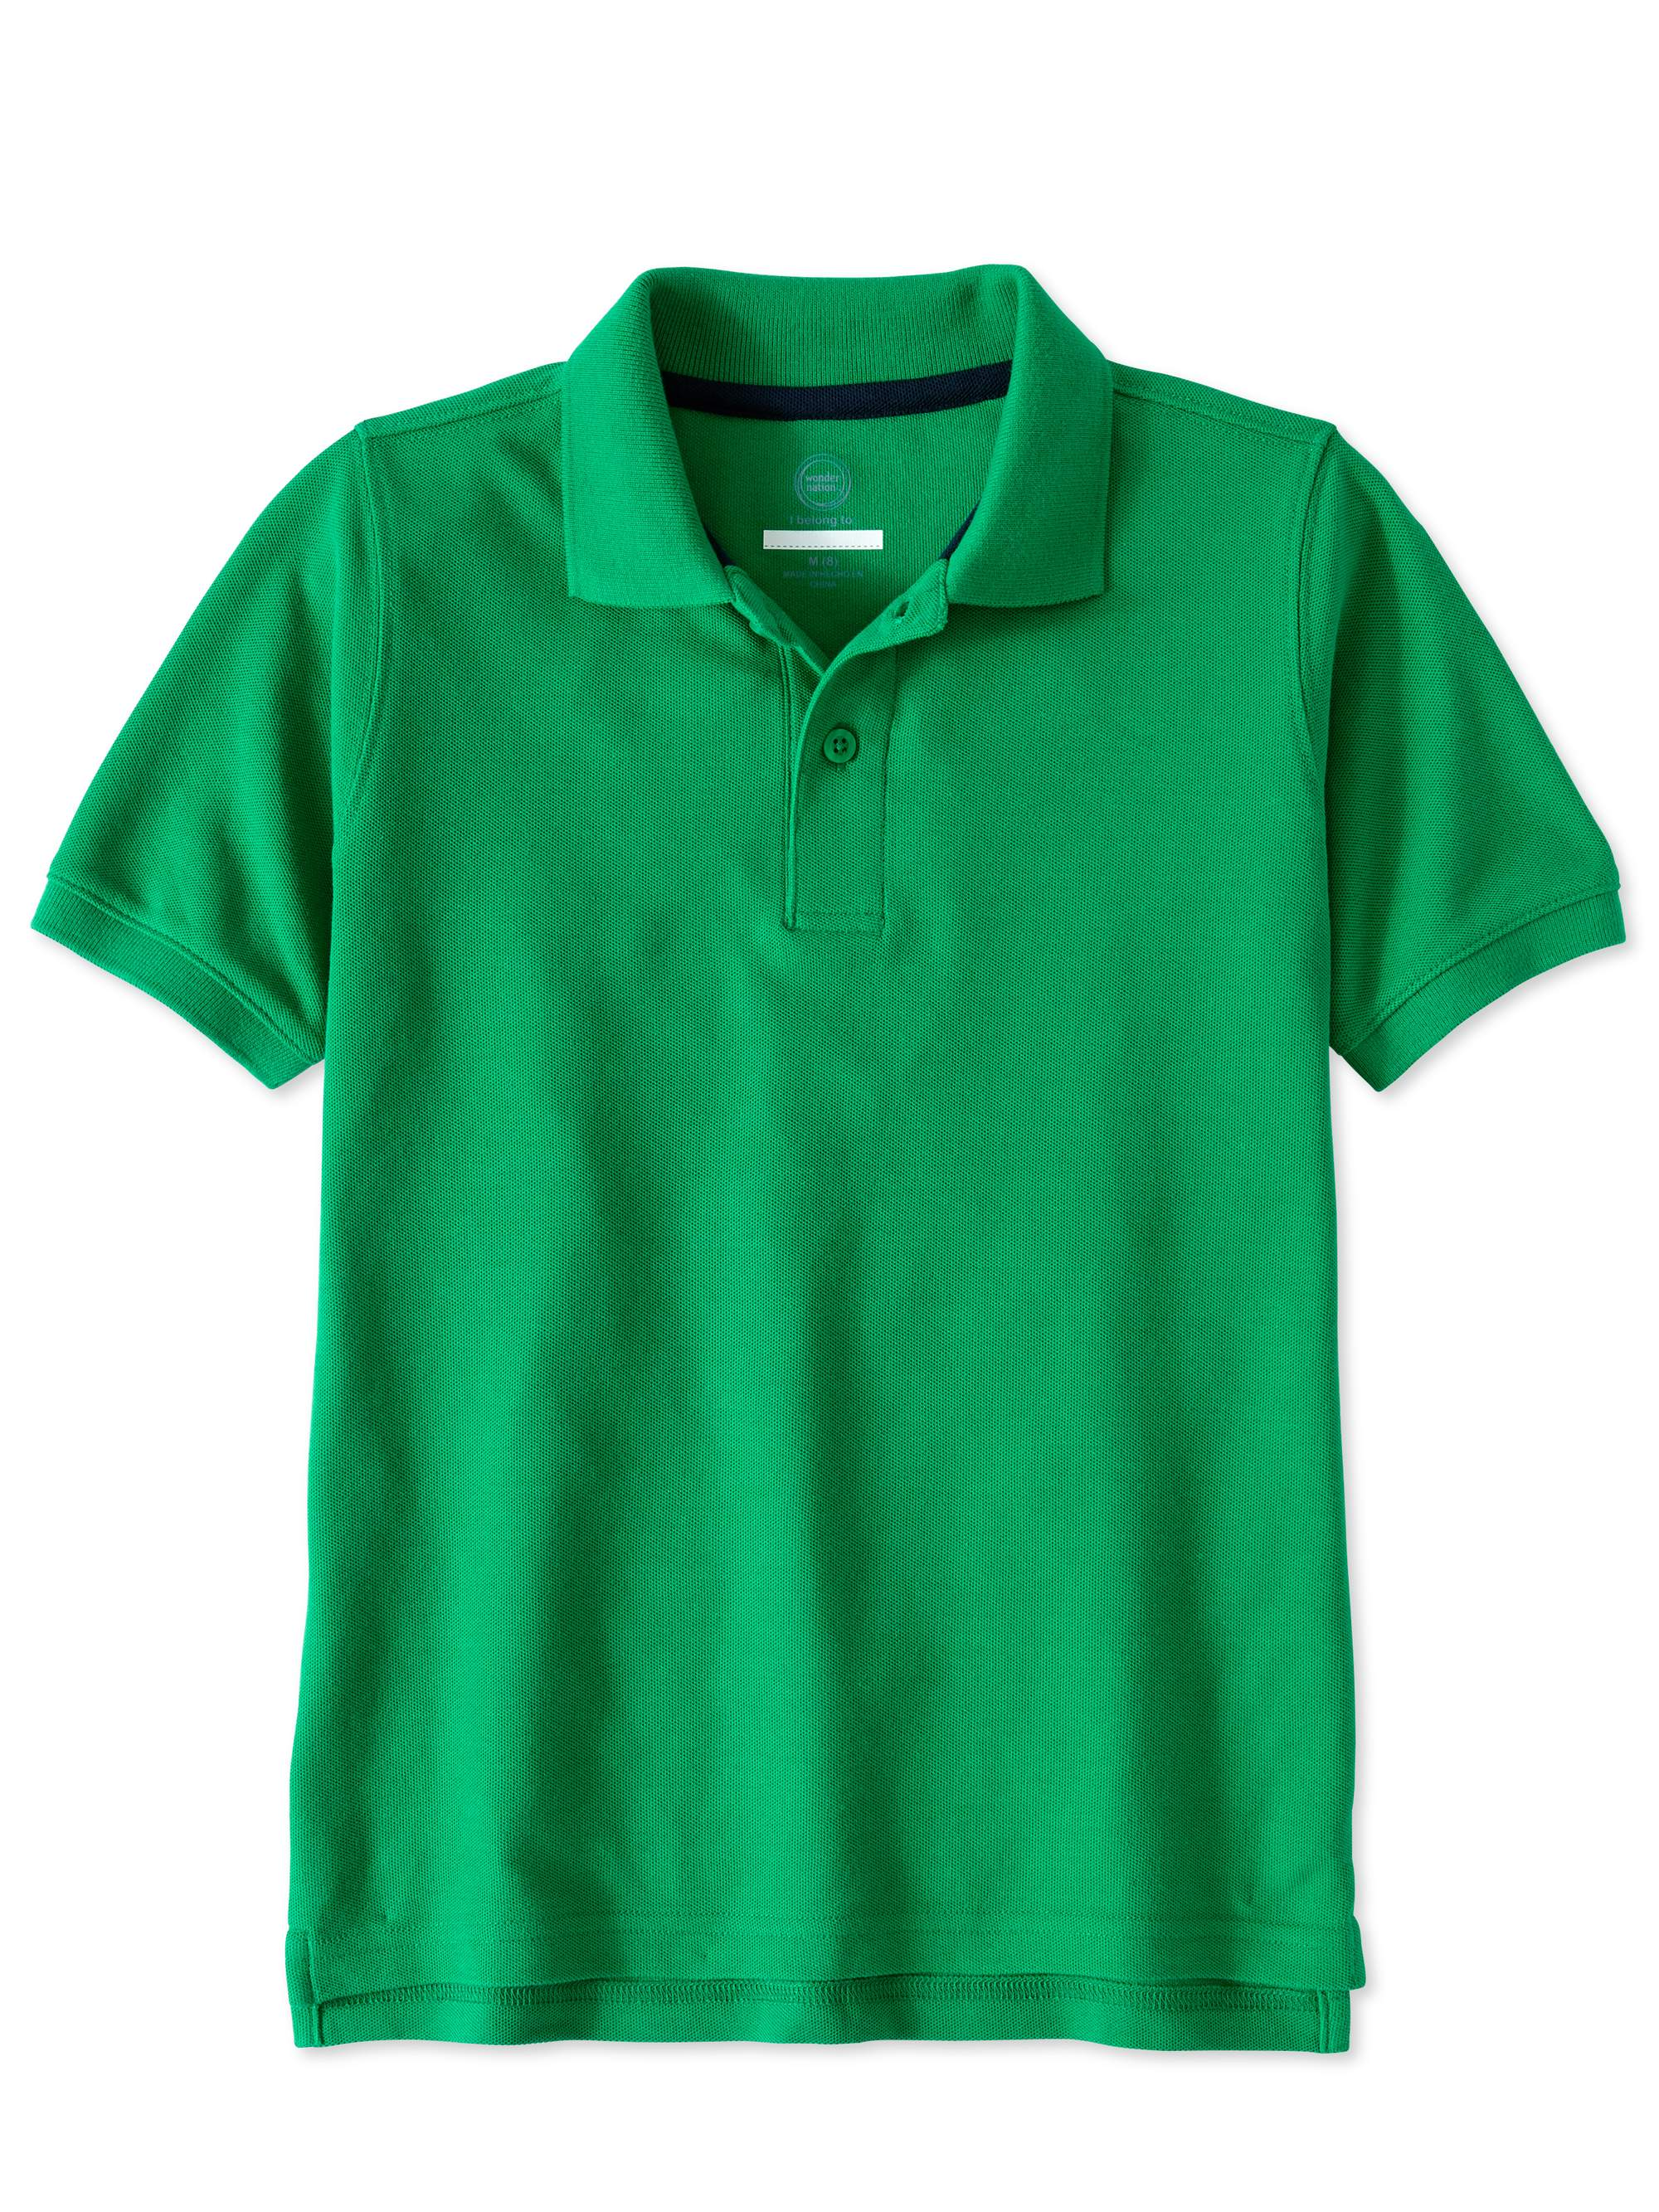 Boys Husky School Uniform Short Sleeve Double Pique Polo